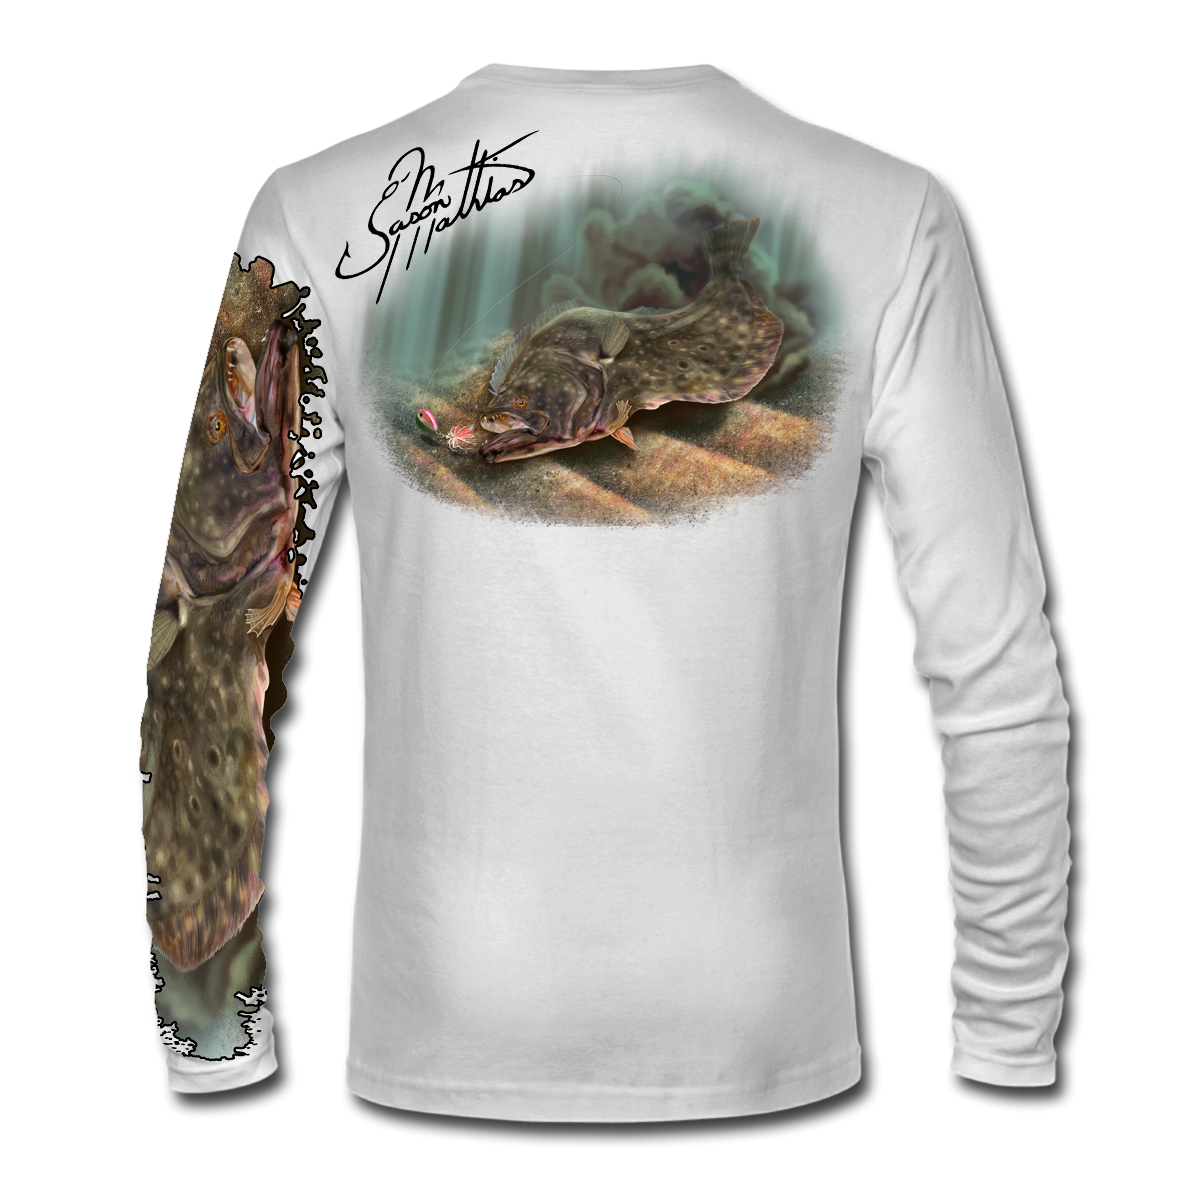 jason-mathias-shirt-line-white-flounder-fluke-fishing-apparel-gear-outdoor-solar-sun-high-performance-inshore-gamefish-art-sportfish-art-designs.png